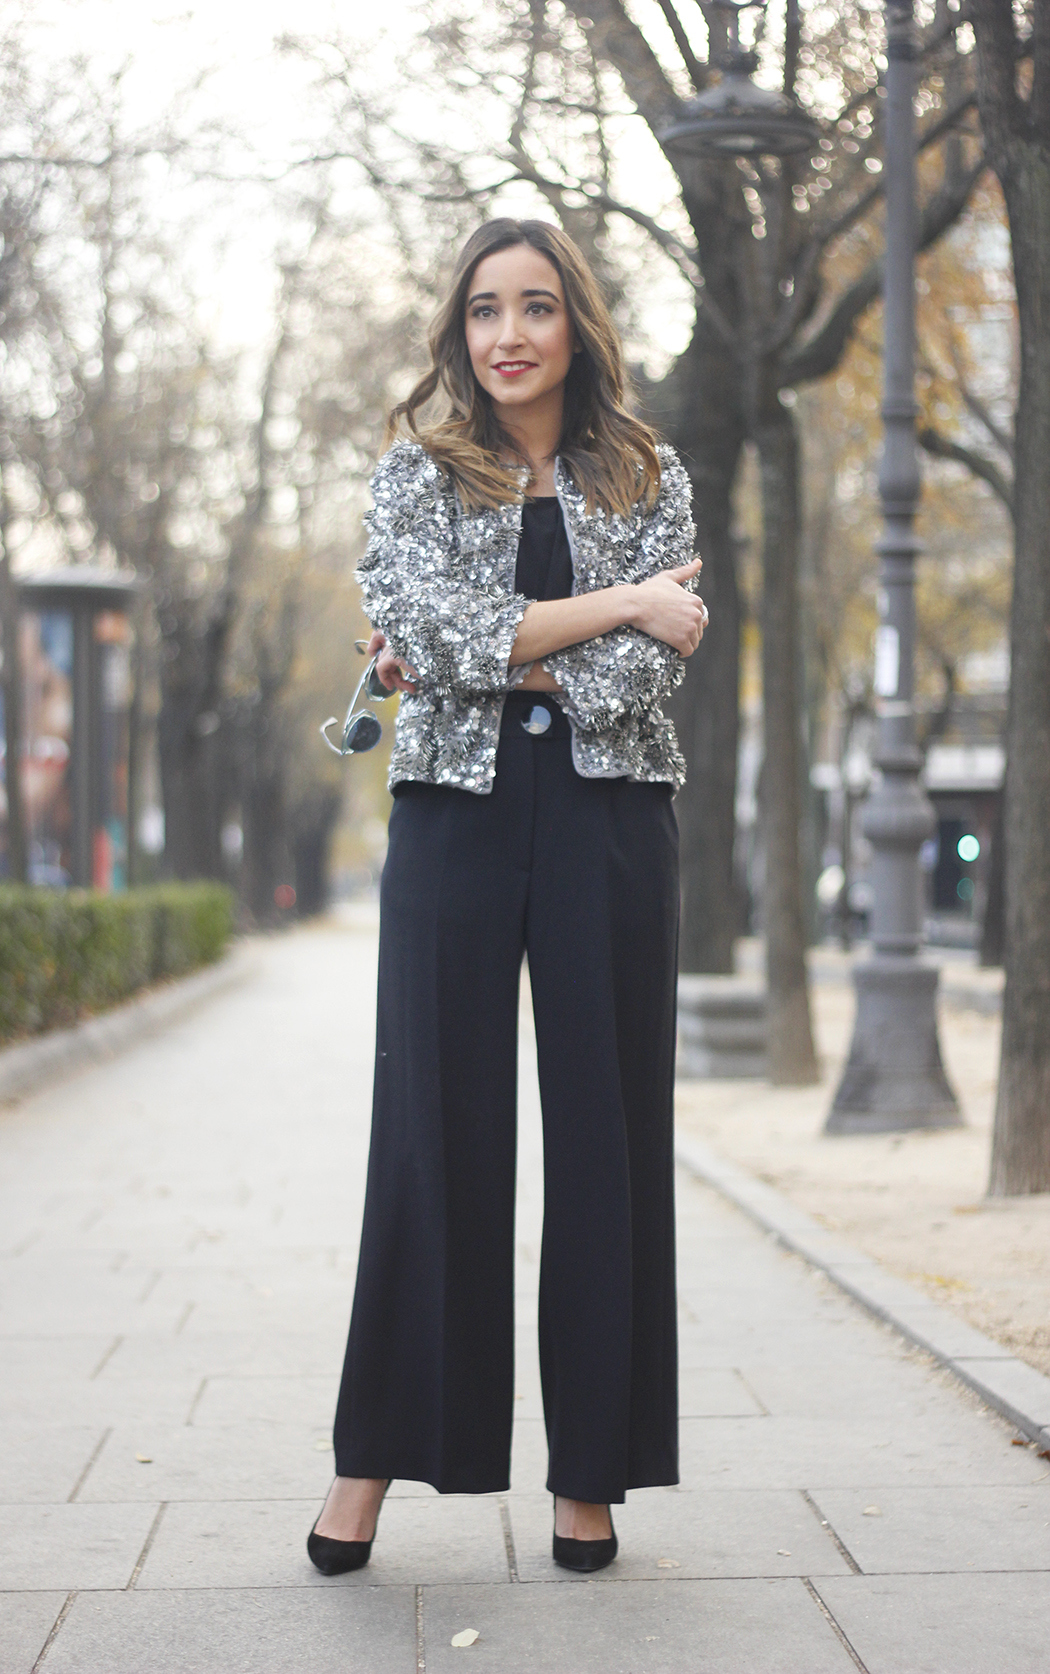 sequined jacket cropped trousers winter outfit black heels accessories streetstyle17